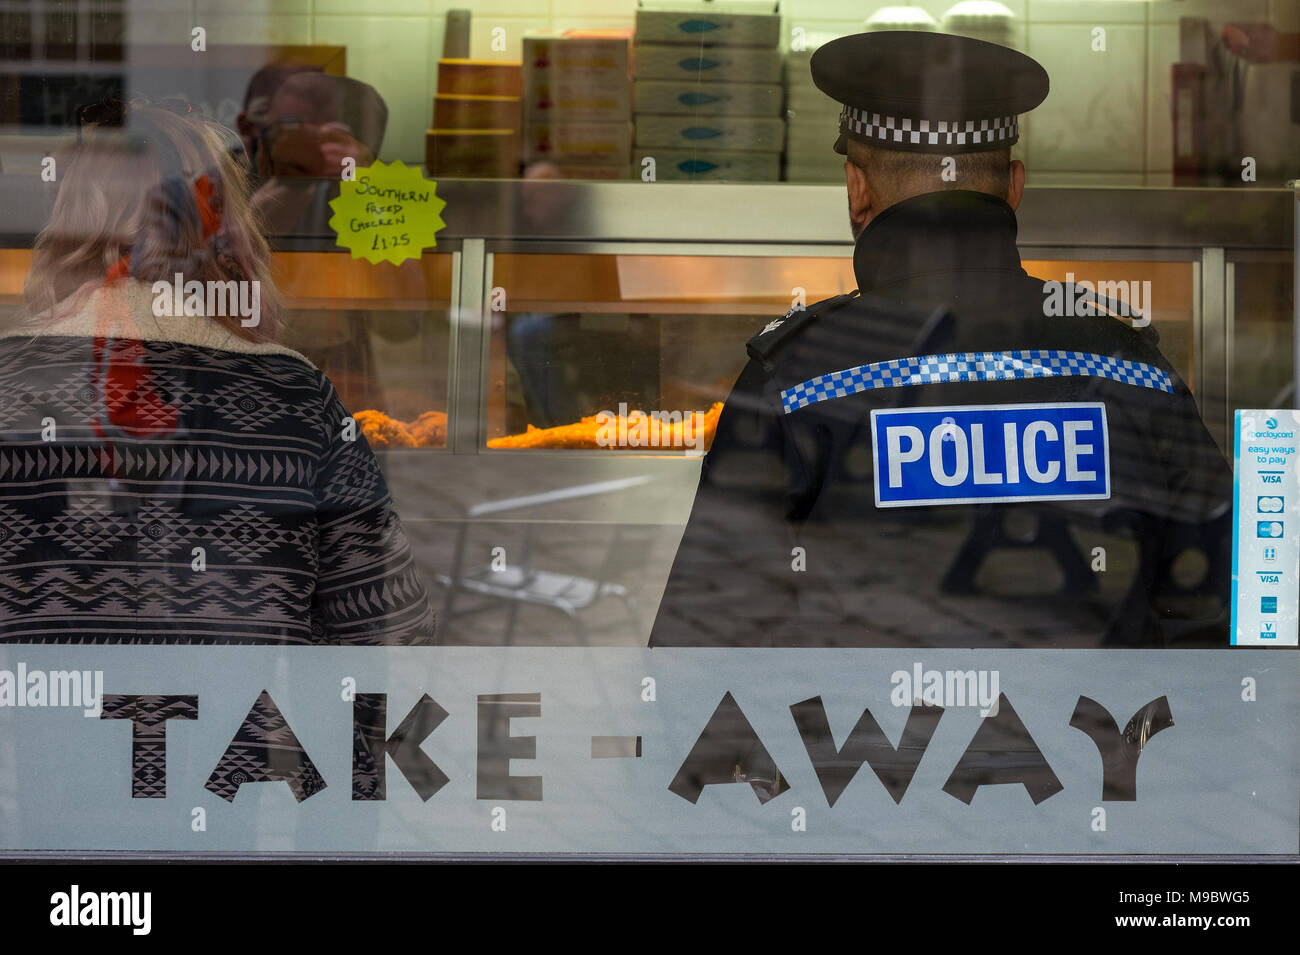 A police officer on the beat in uniform resting and eating lunch. Policeman in a takeaway food outlet. Bobby on the beat policing in the community. - Stock Image